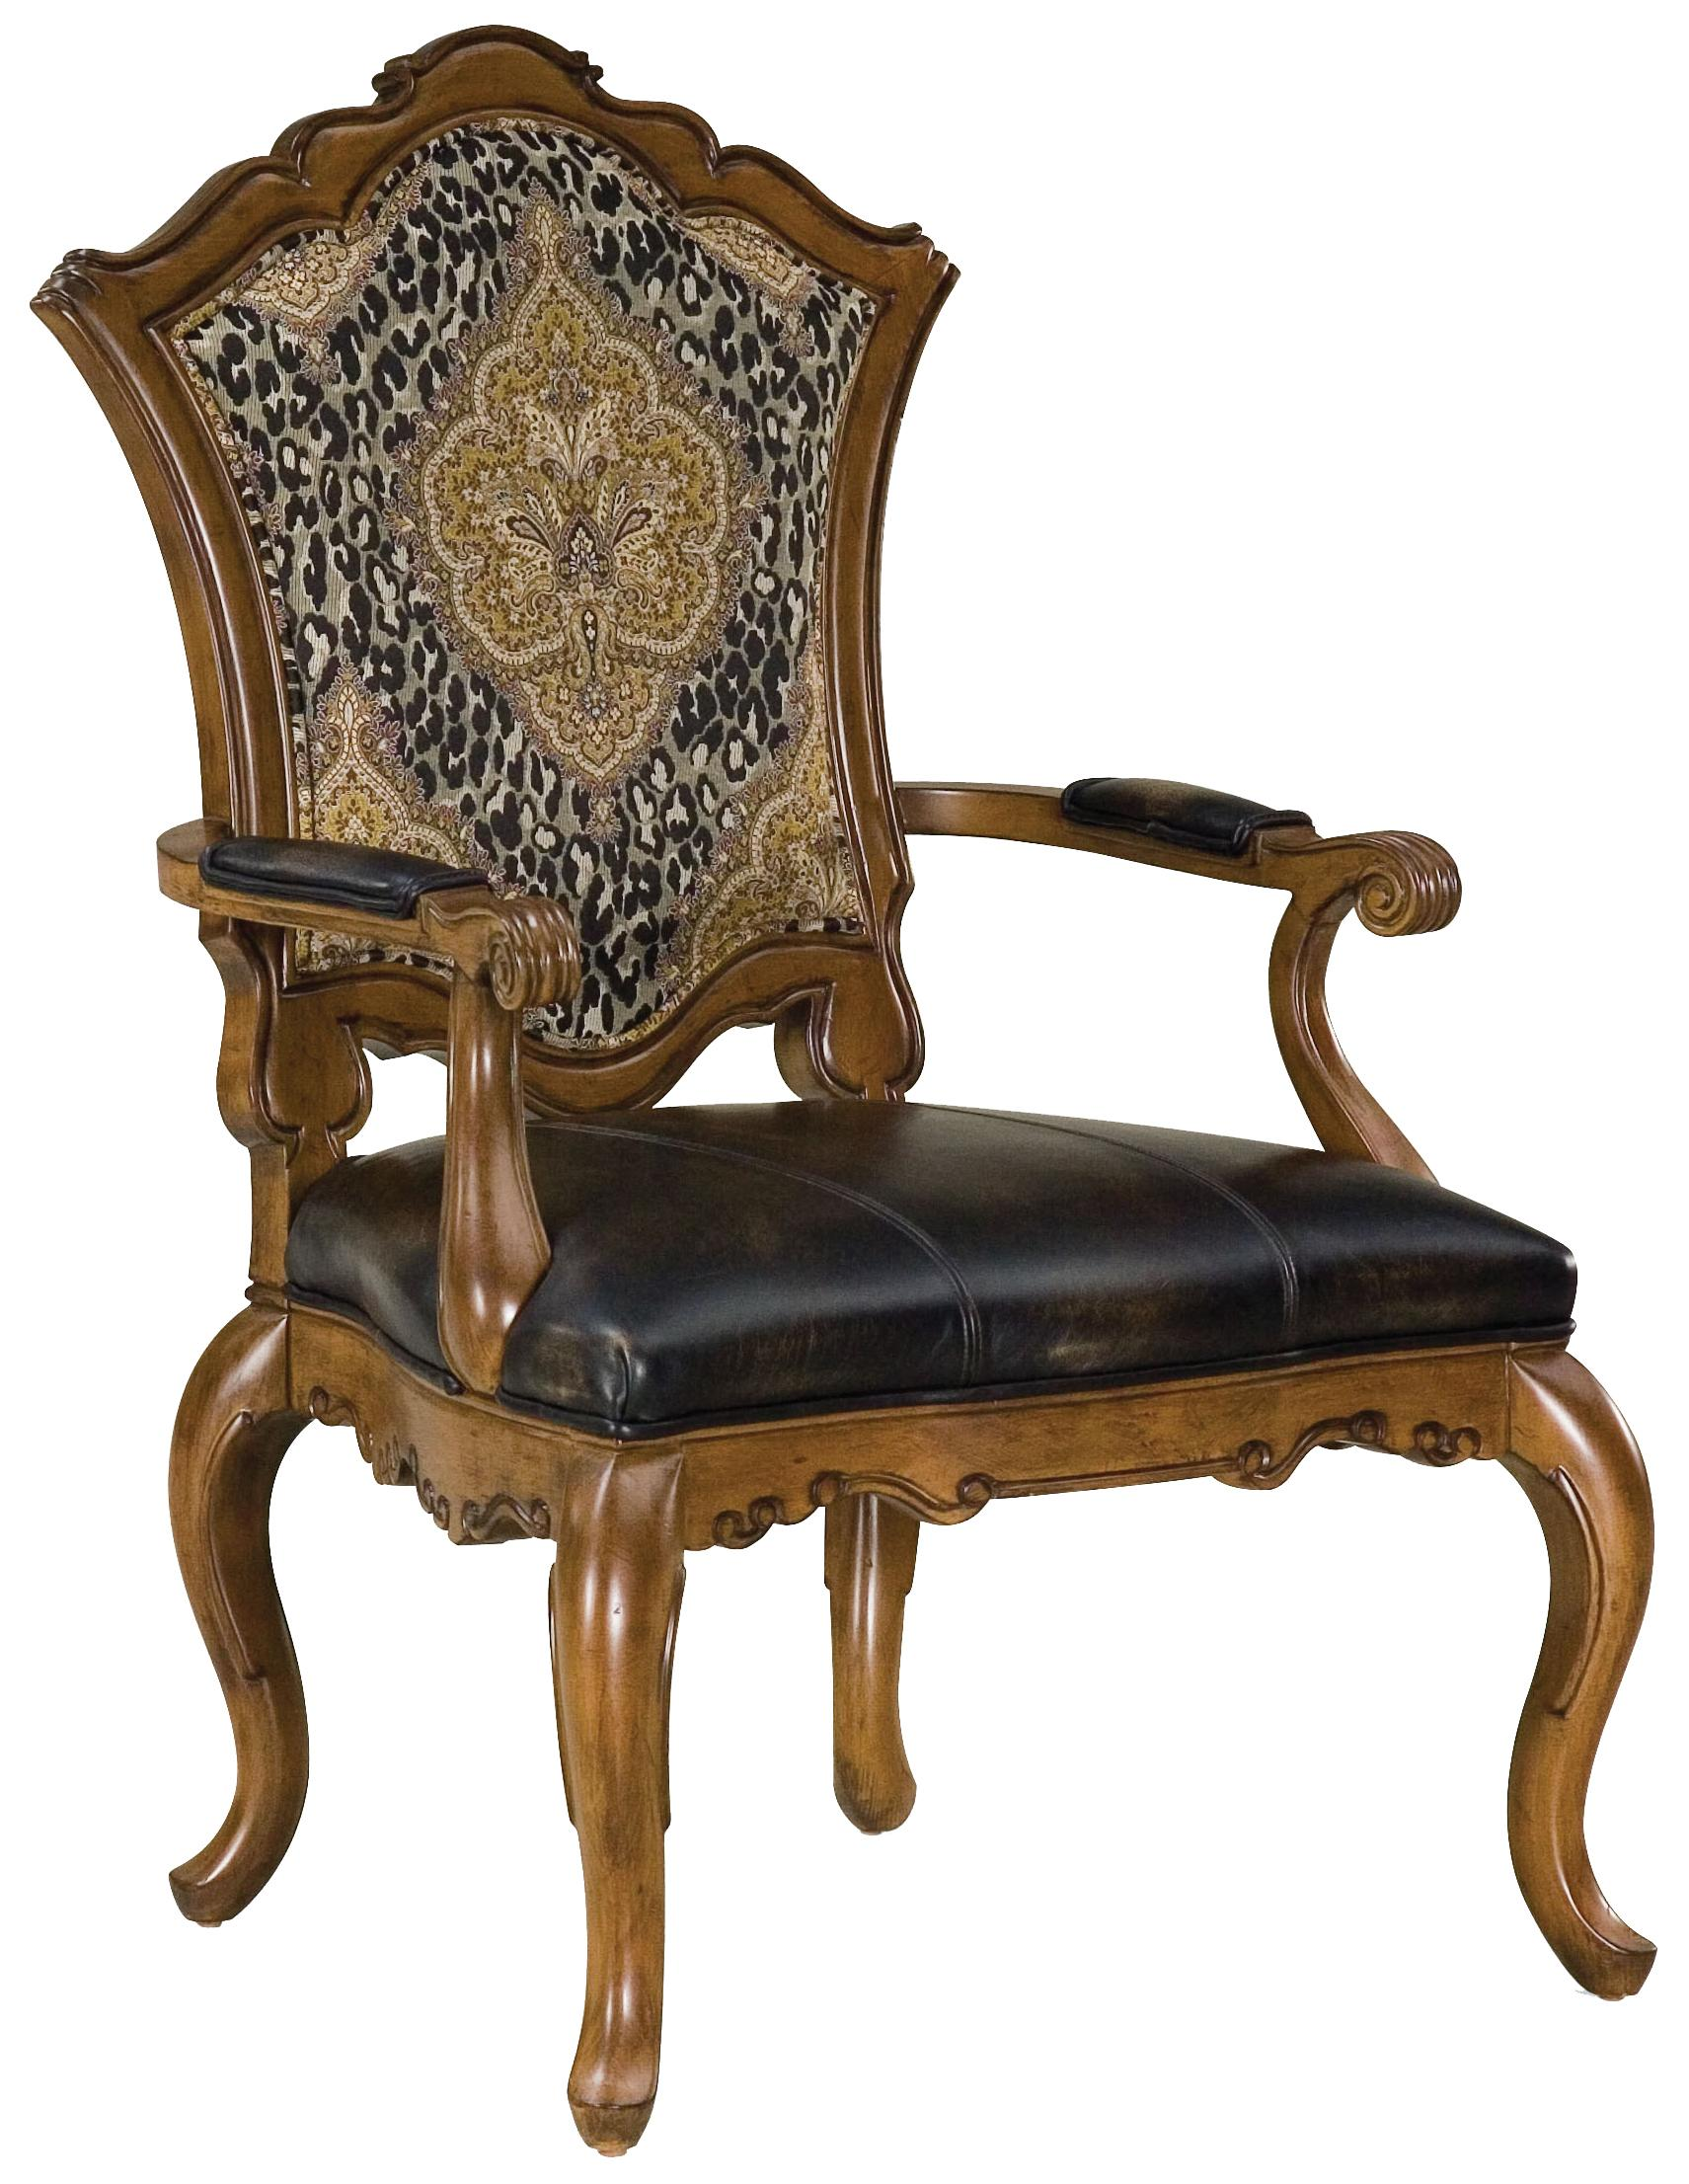 Fairfield Chairs Victorian Carved Chair - Item Number: 5416-01